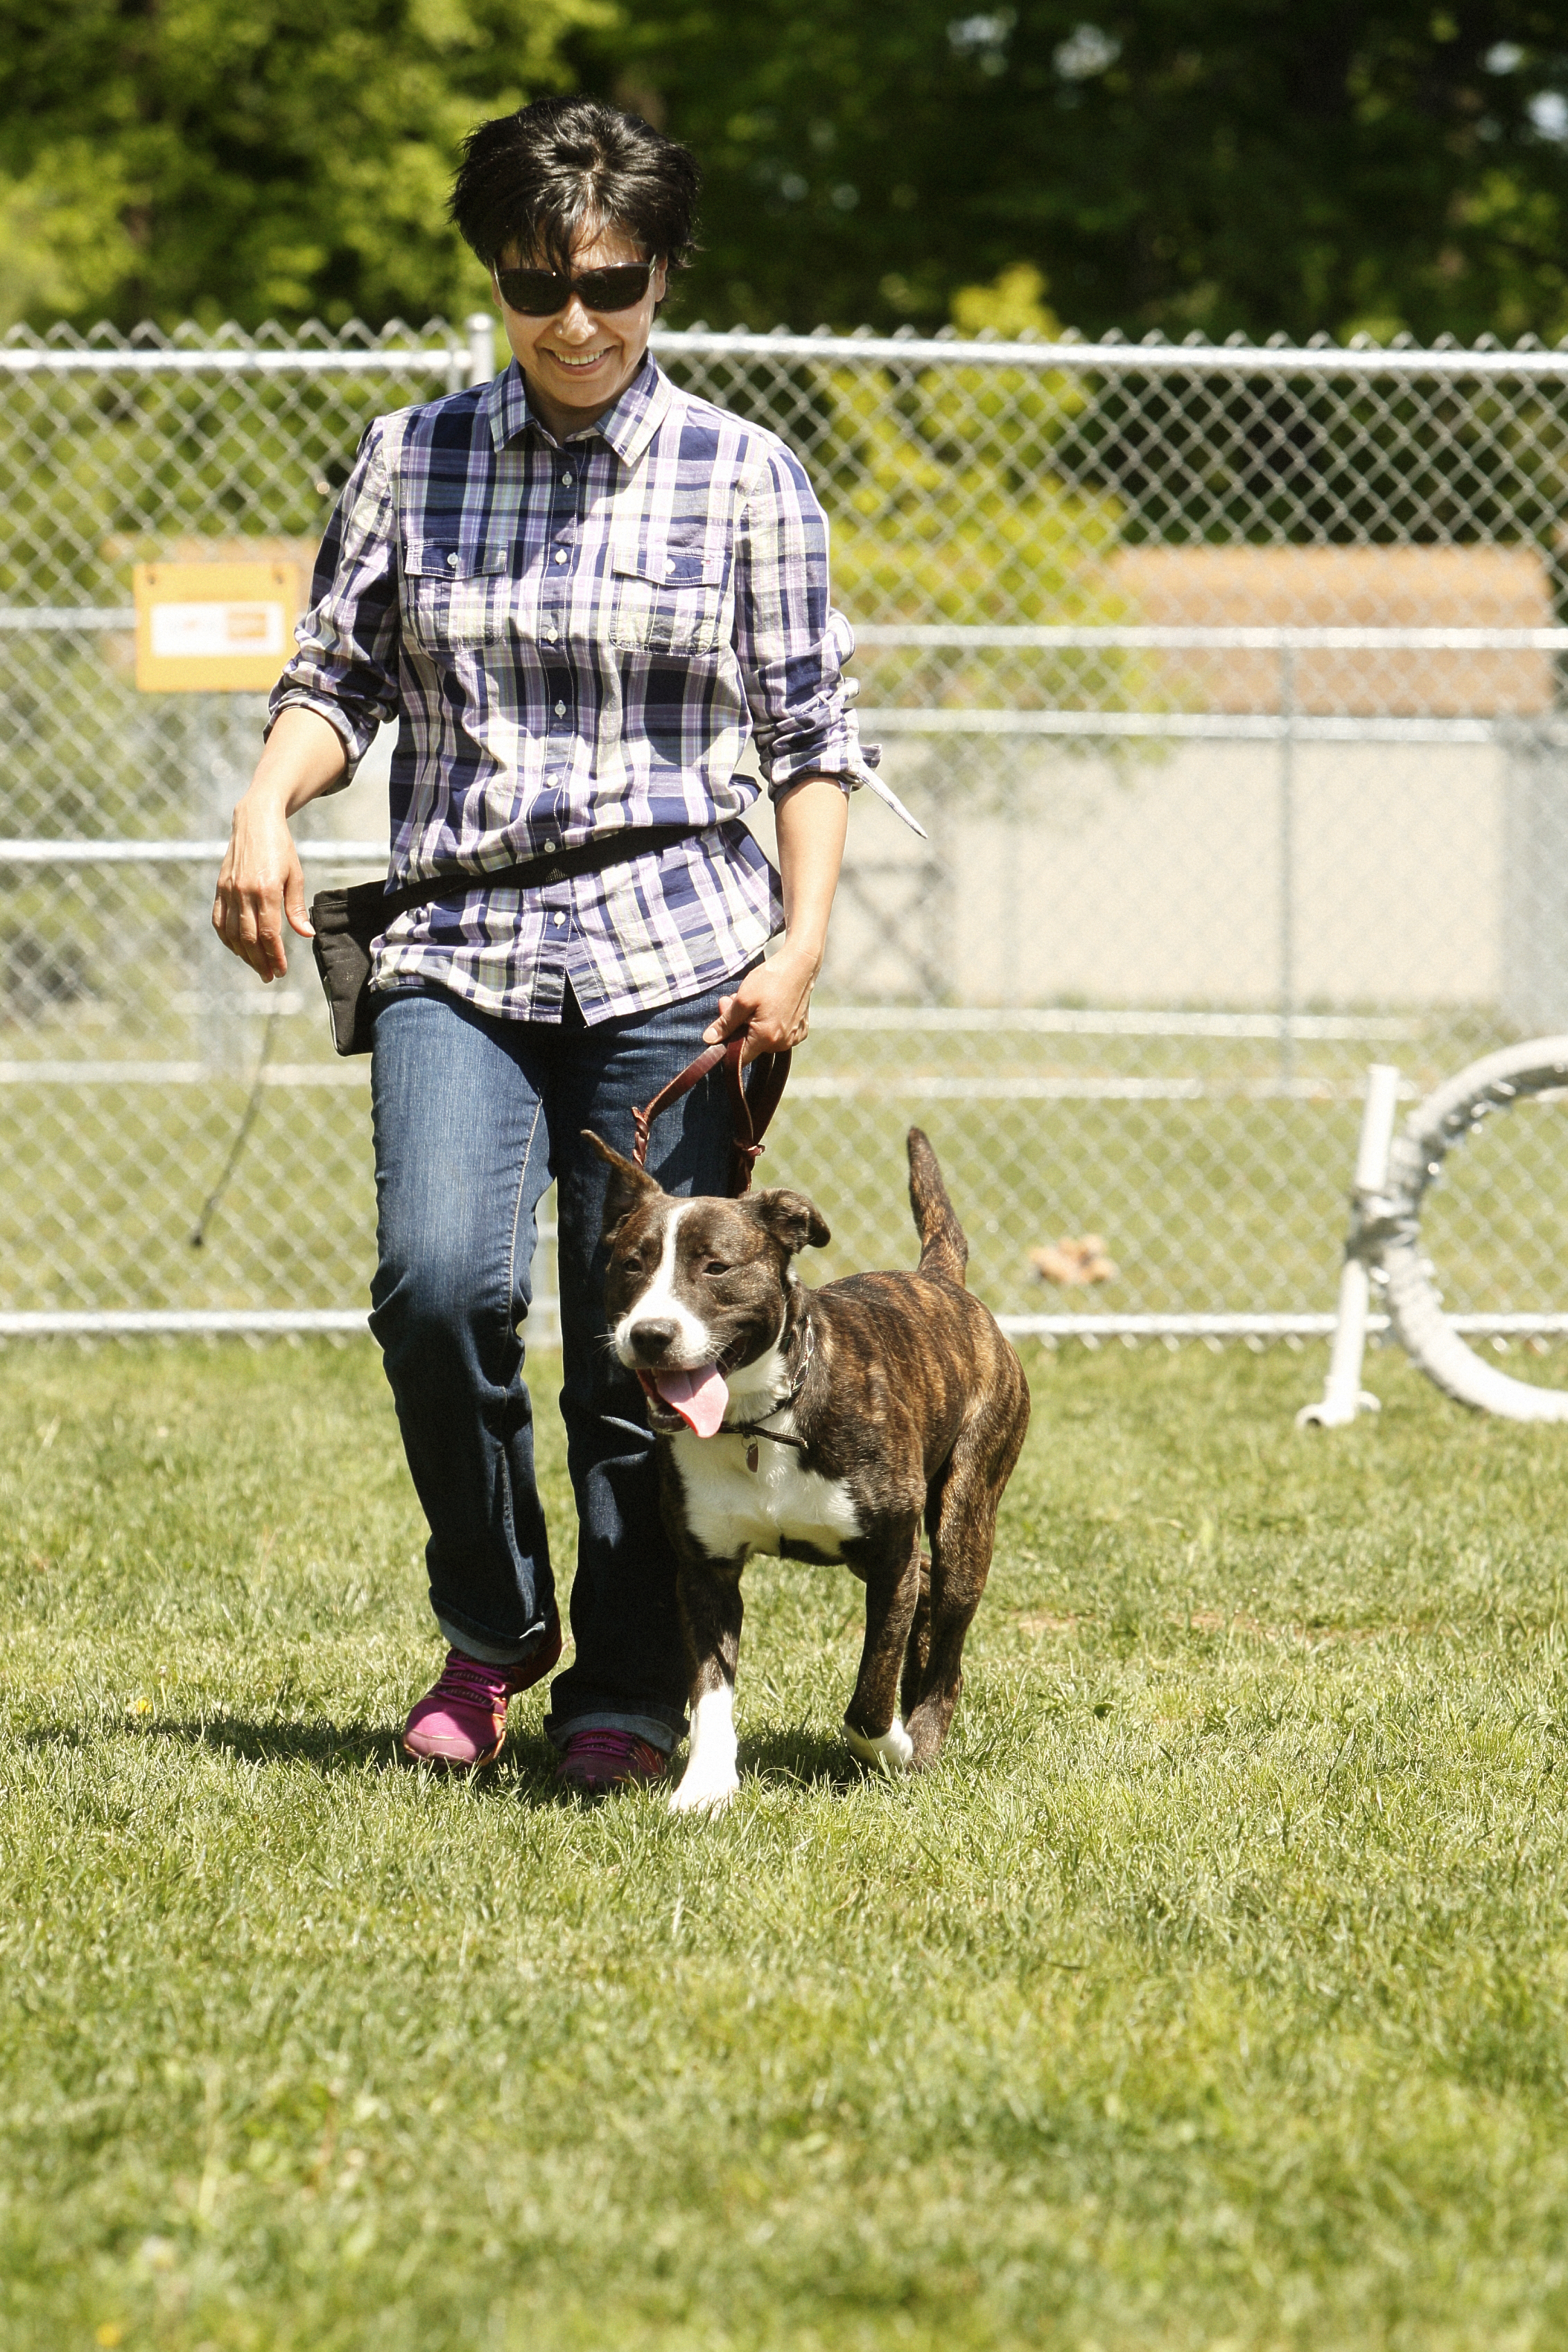 A Week of Working Behavior Cases - Announcing a new Level 2 Behavior Workshop designed for experienced dog trainers or students seeking more hands-on experience with challenging behavior cases.